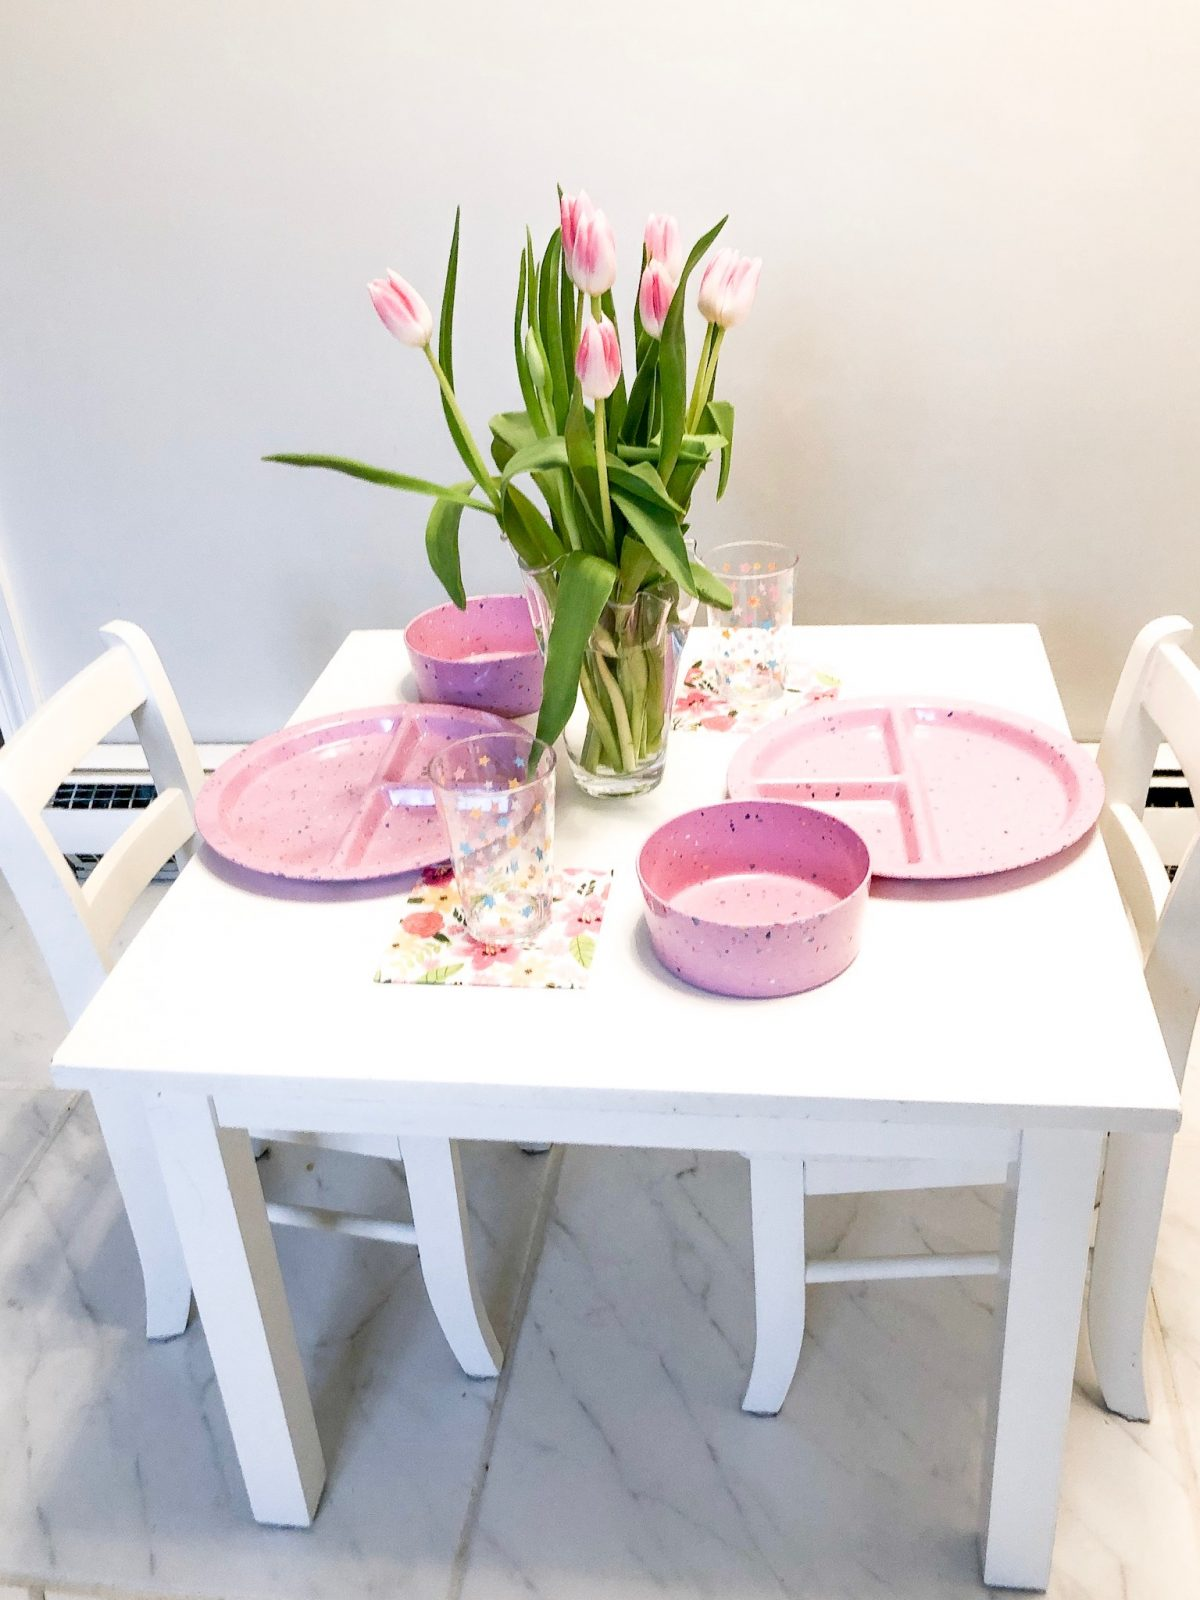 pink tulips and pink toddler plates, cups, and bowls on white toddler table